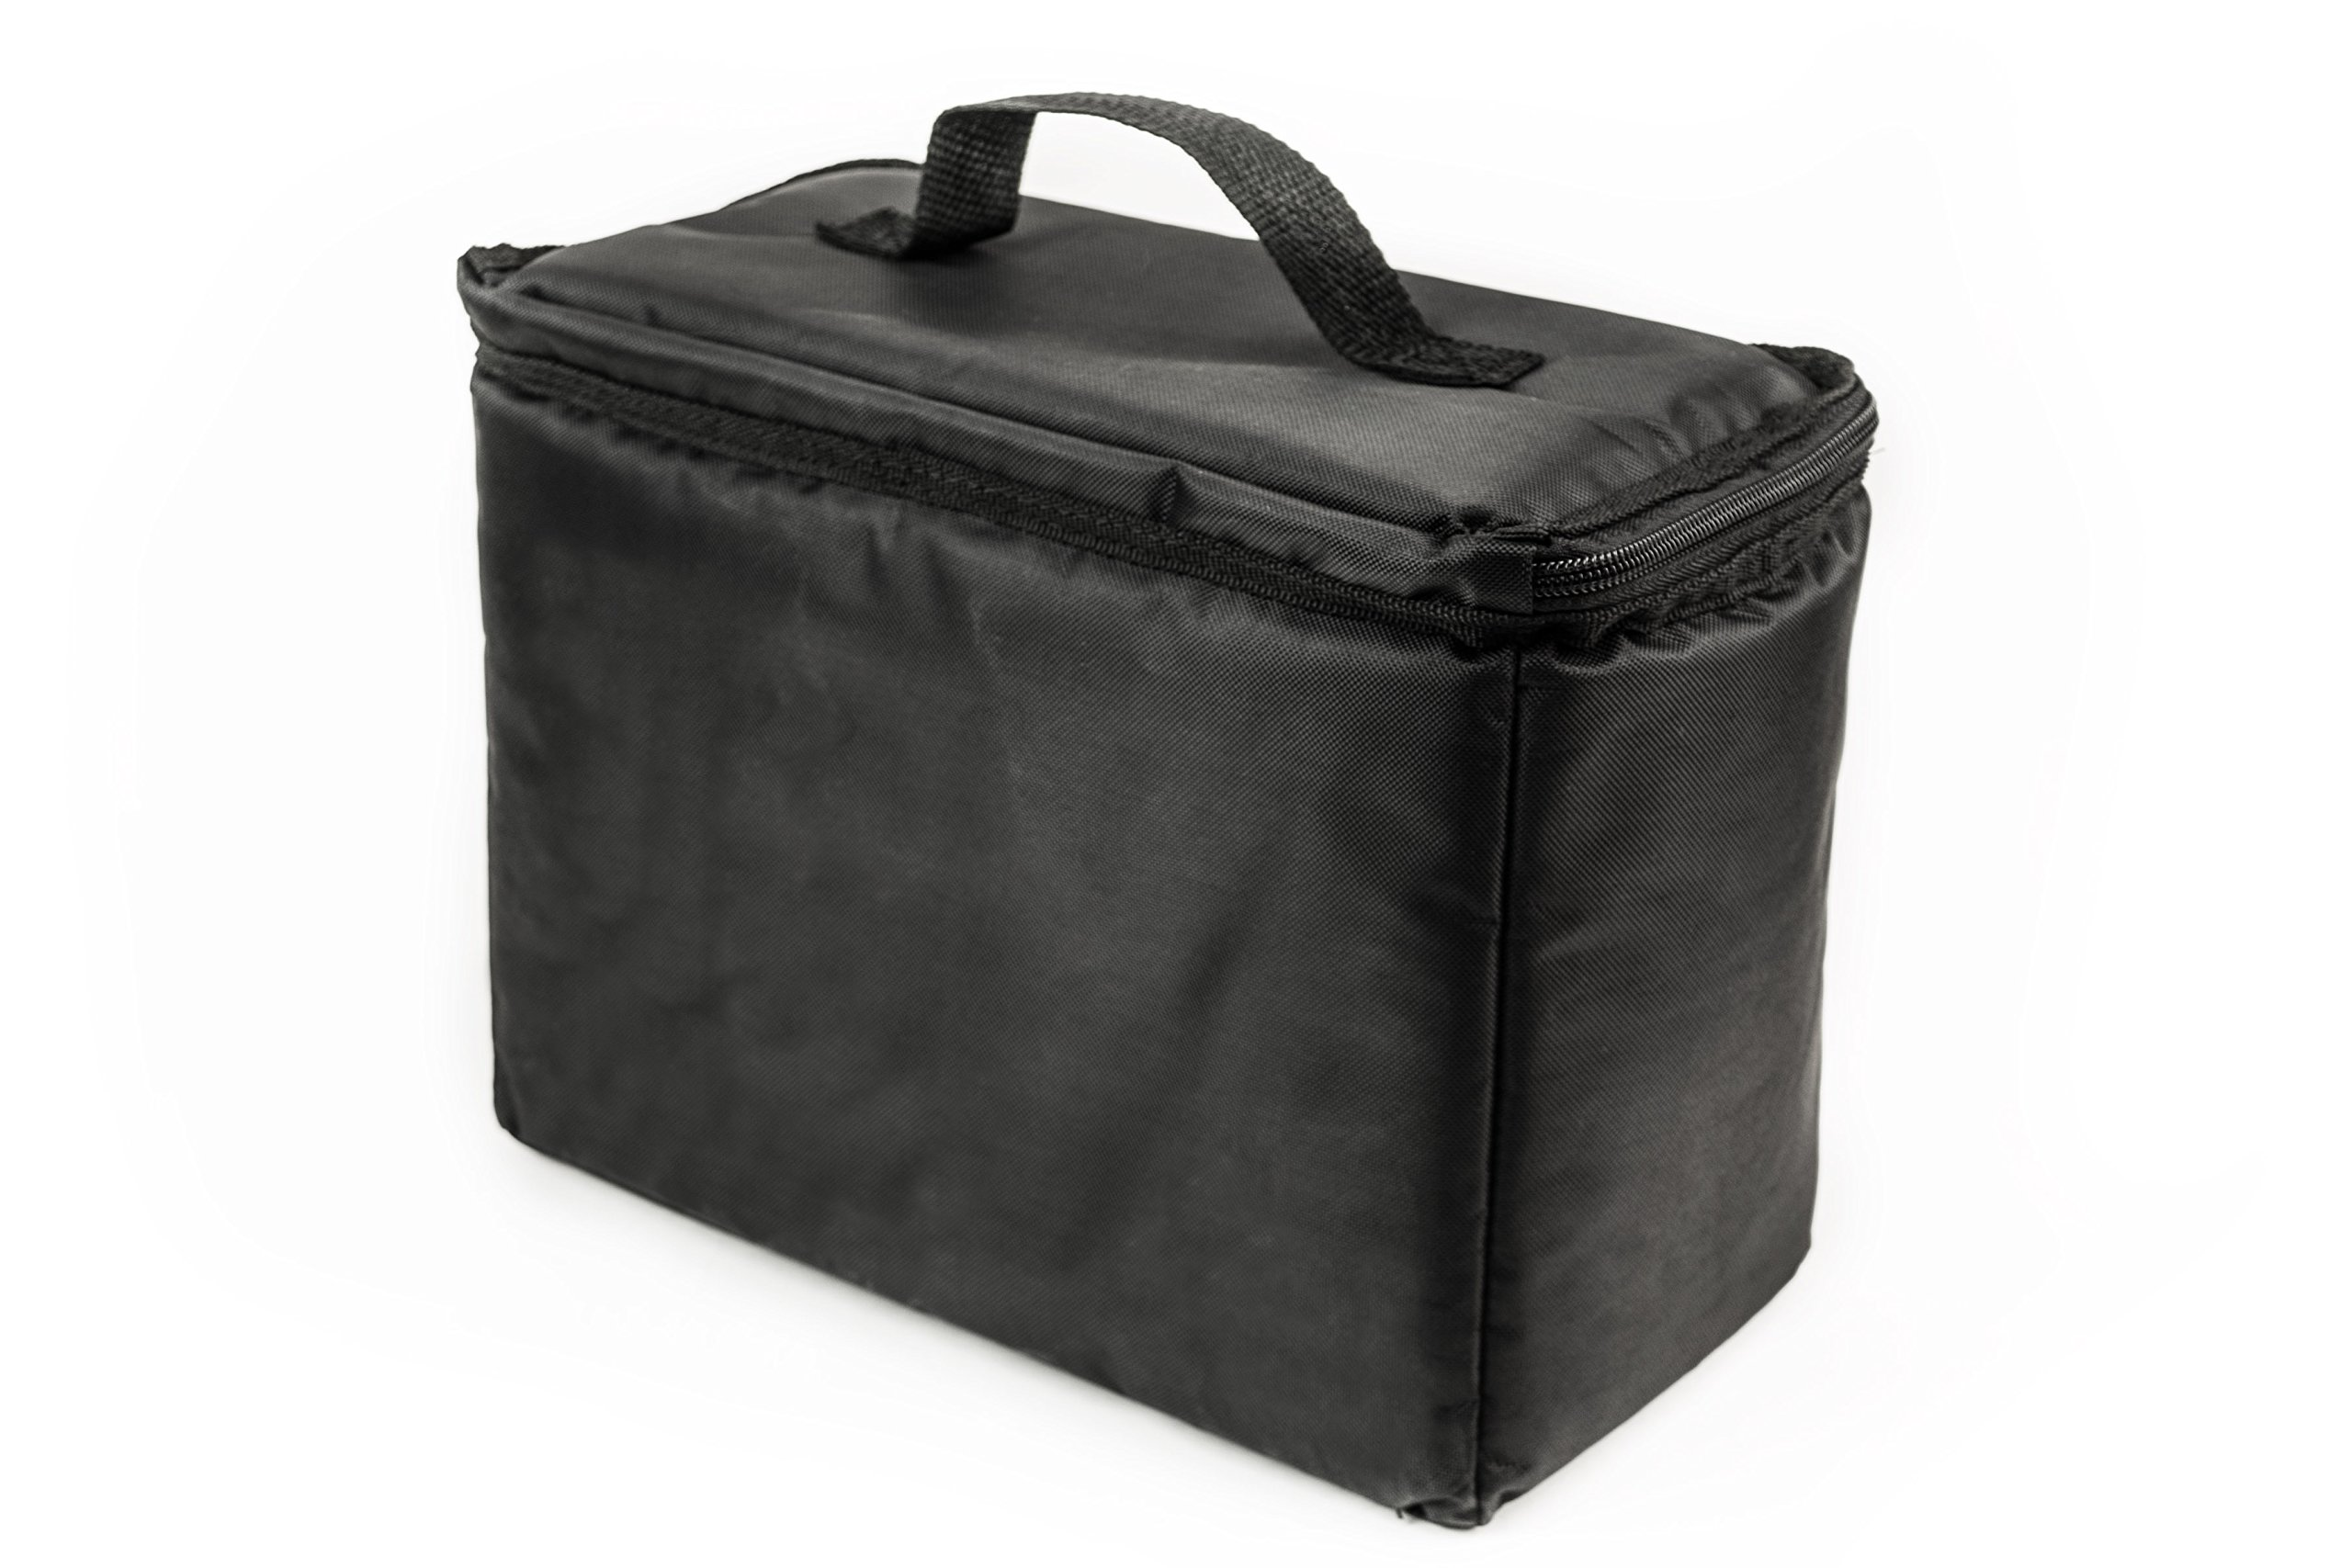 AutoExec AETote-08 Black/Grey File Tote with One Cooler and One Hanging File Holder by AutoExec (Image #6)